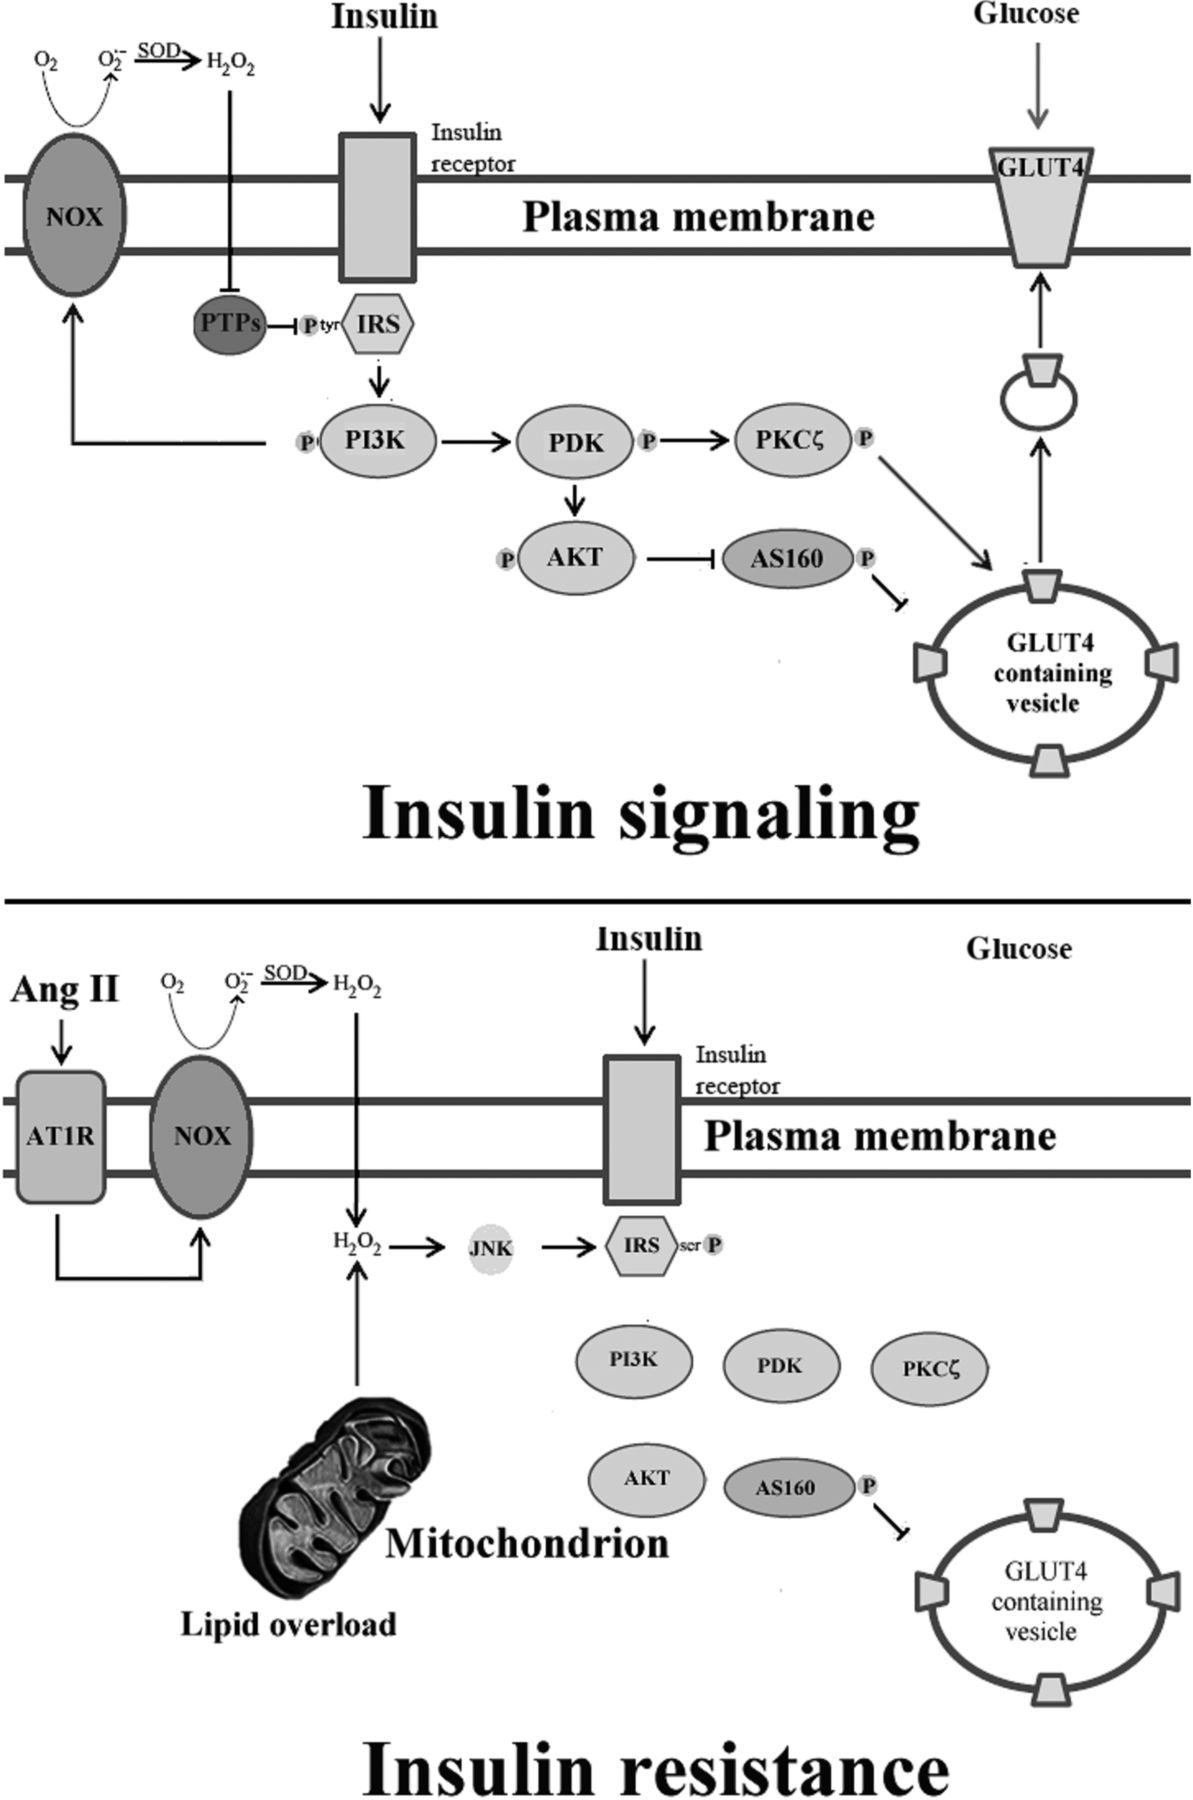 Skeletal muscle insulin resistance: role of mitochondria and